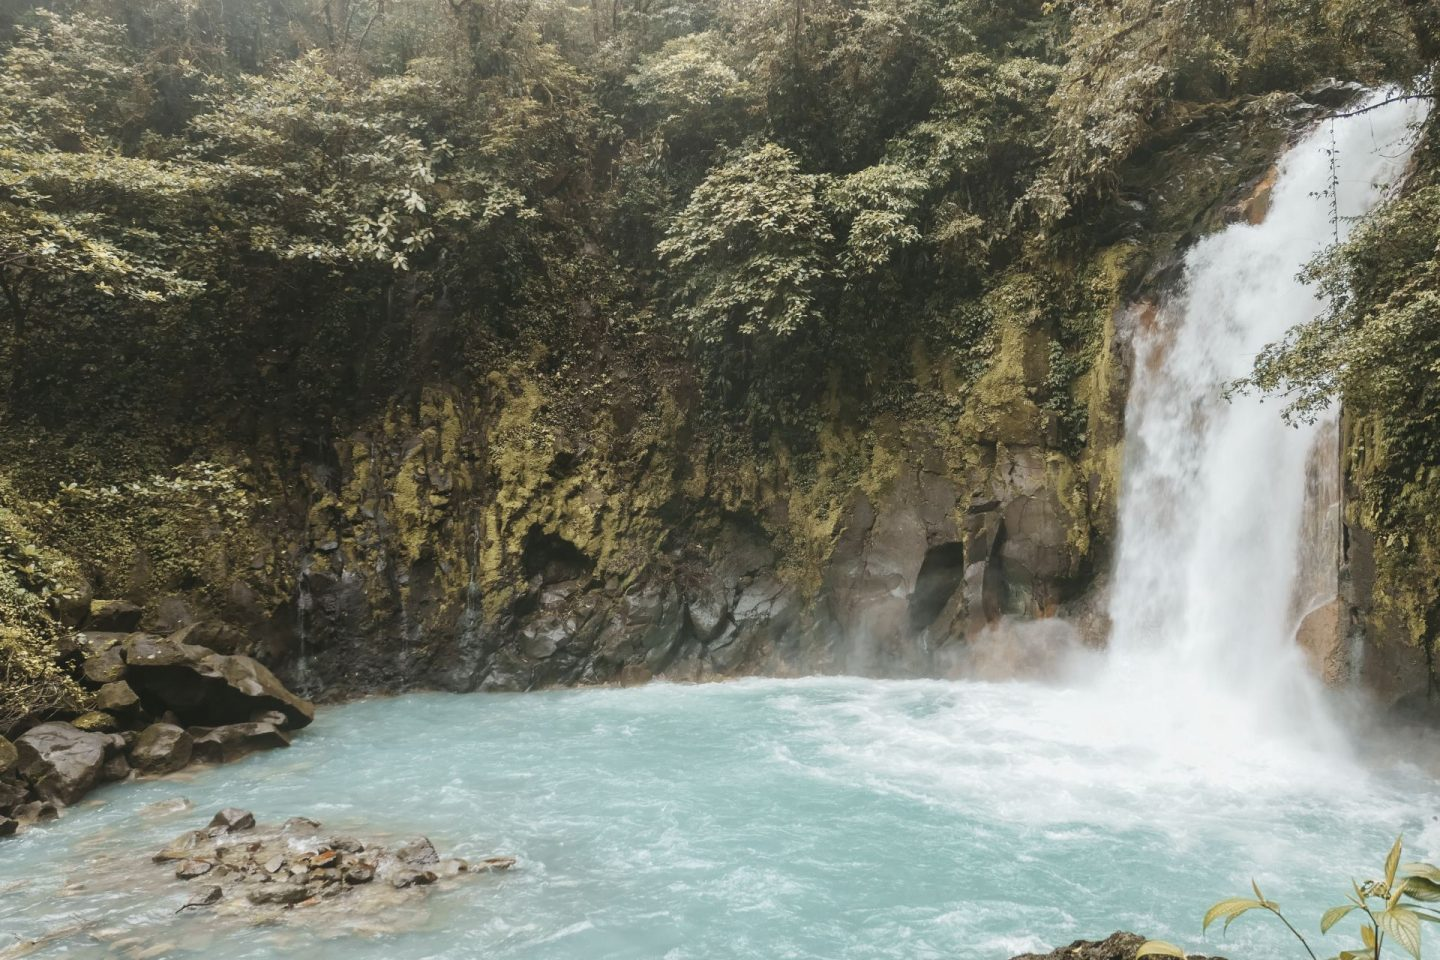 Rio Celeste Waterfall Hike (Everything You Need to Know)